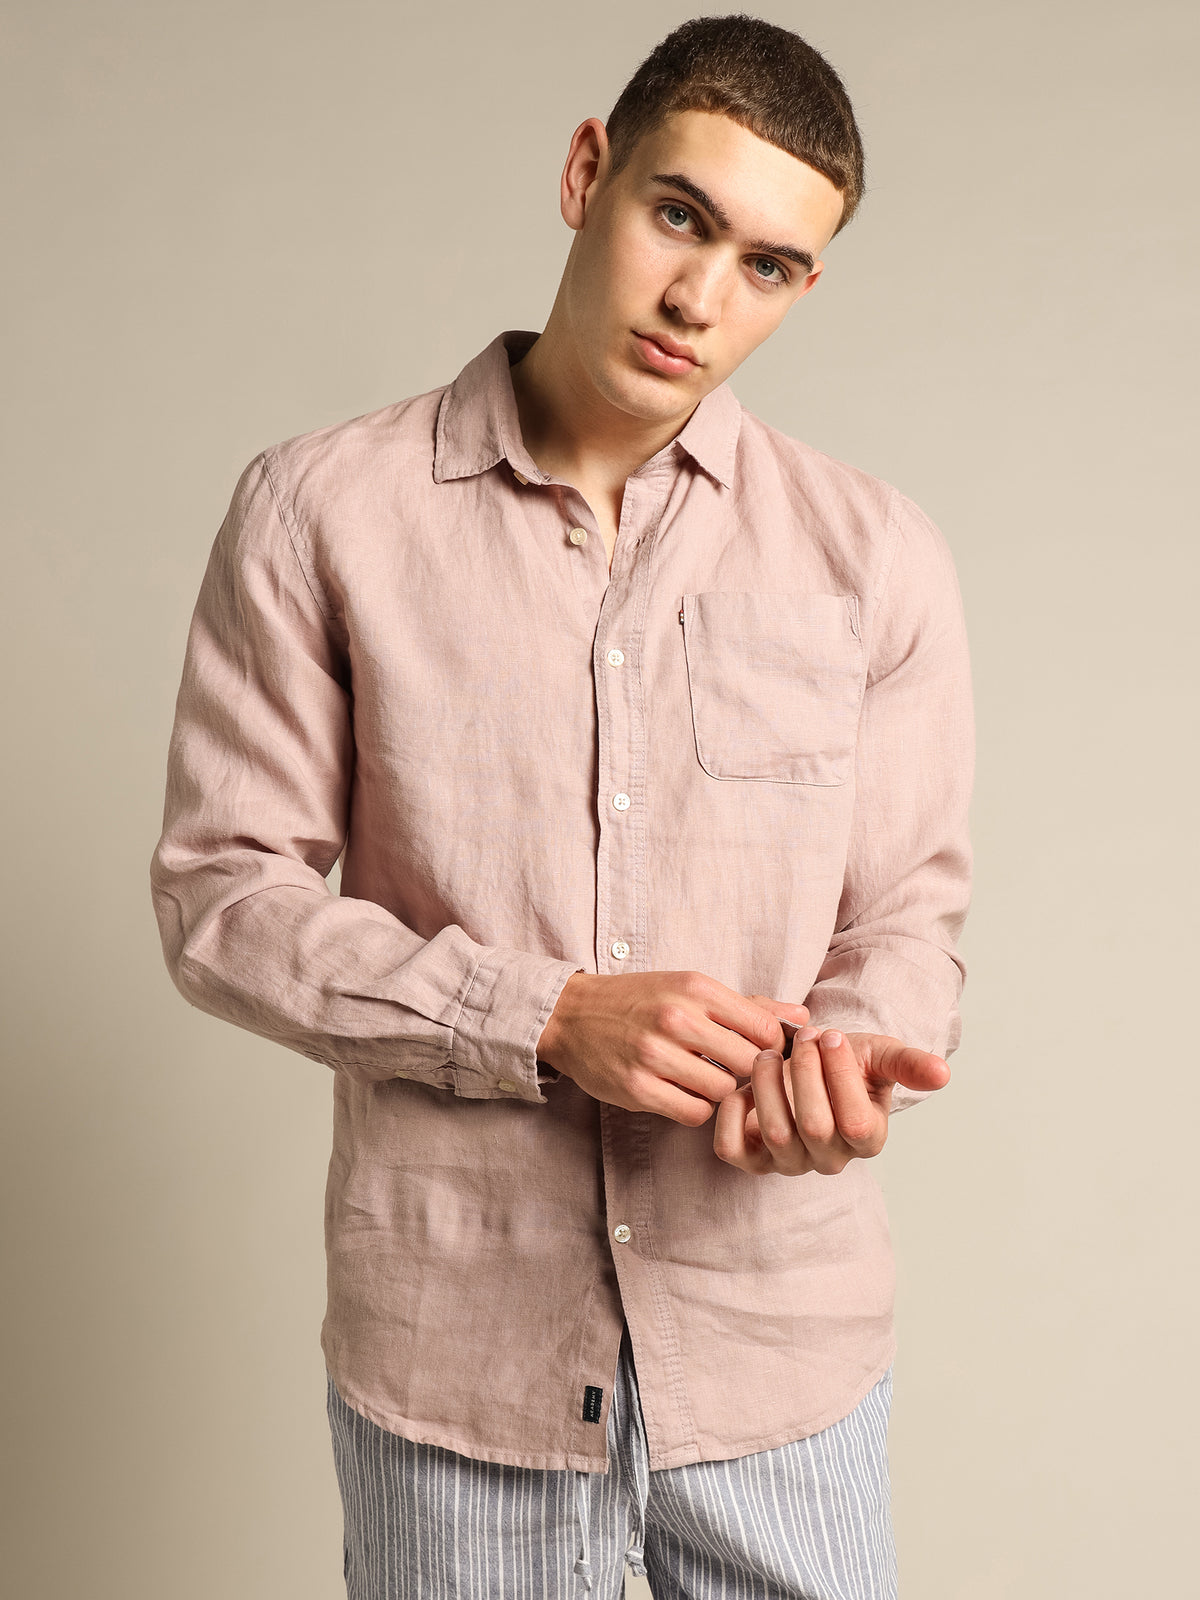 Hampton Linen Long Sleeve T-Shirt in Musk Pink